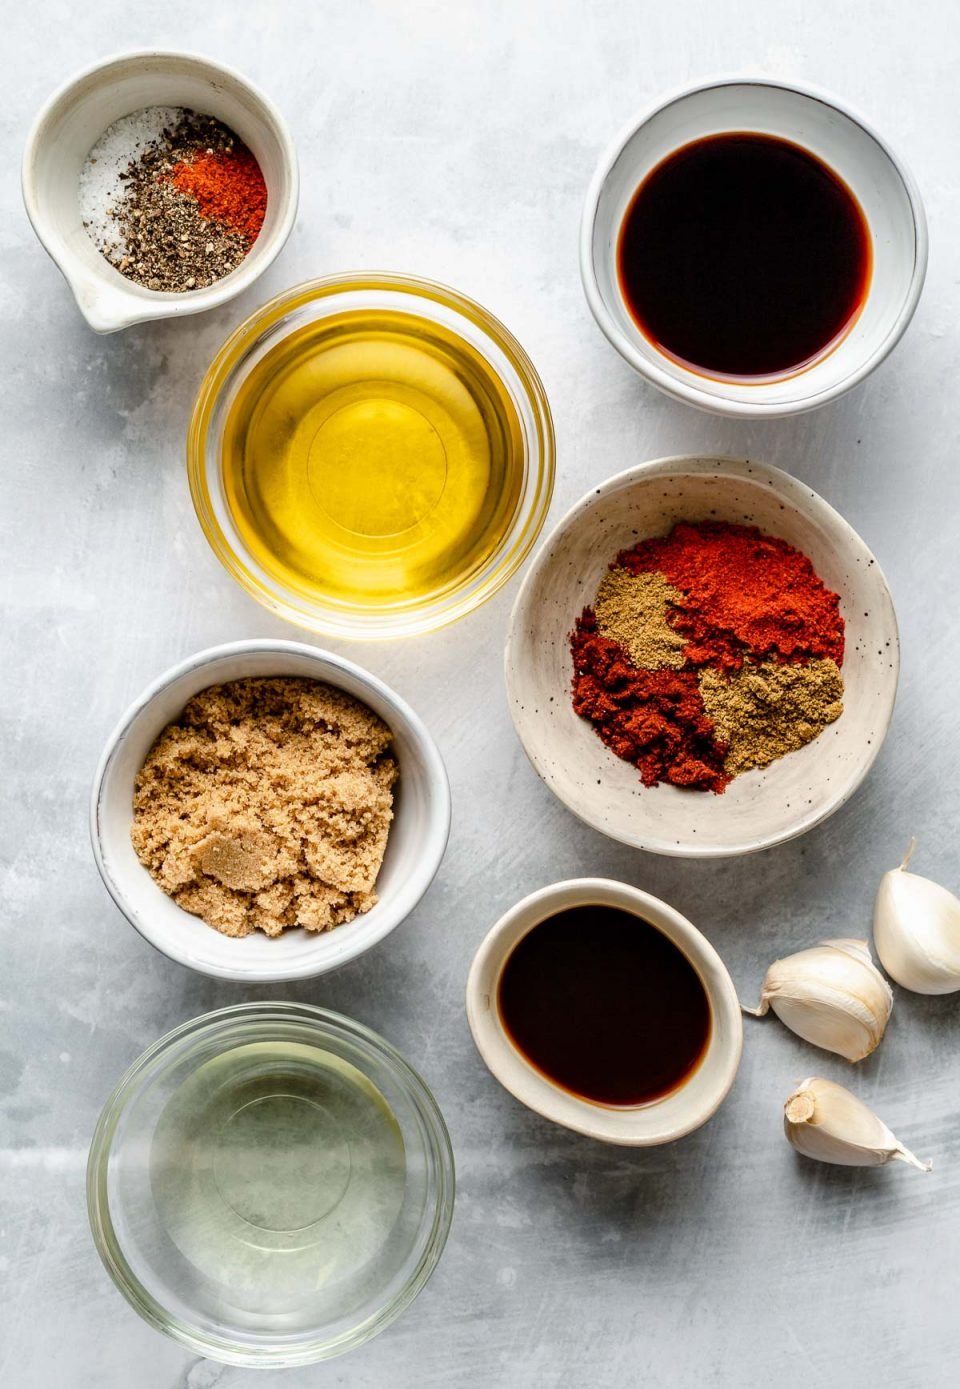 All-purpose marinade ingredients arranged on a light blue surface: olive oil, brown sugar, apple cider vinegar, low-sodium soy sauce, Worcestershire sauce, garlic, chili powder, ground cumin, smoked paprika, salt, pepper, & optional cayenne pepper.